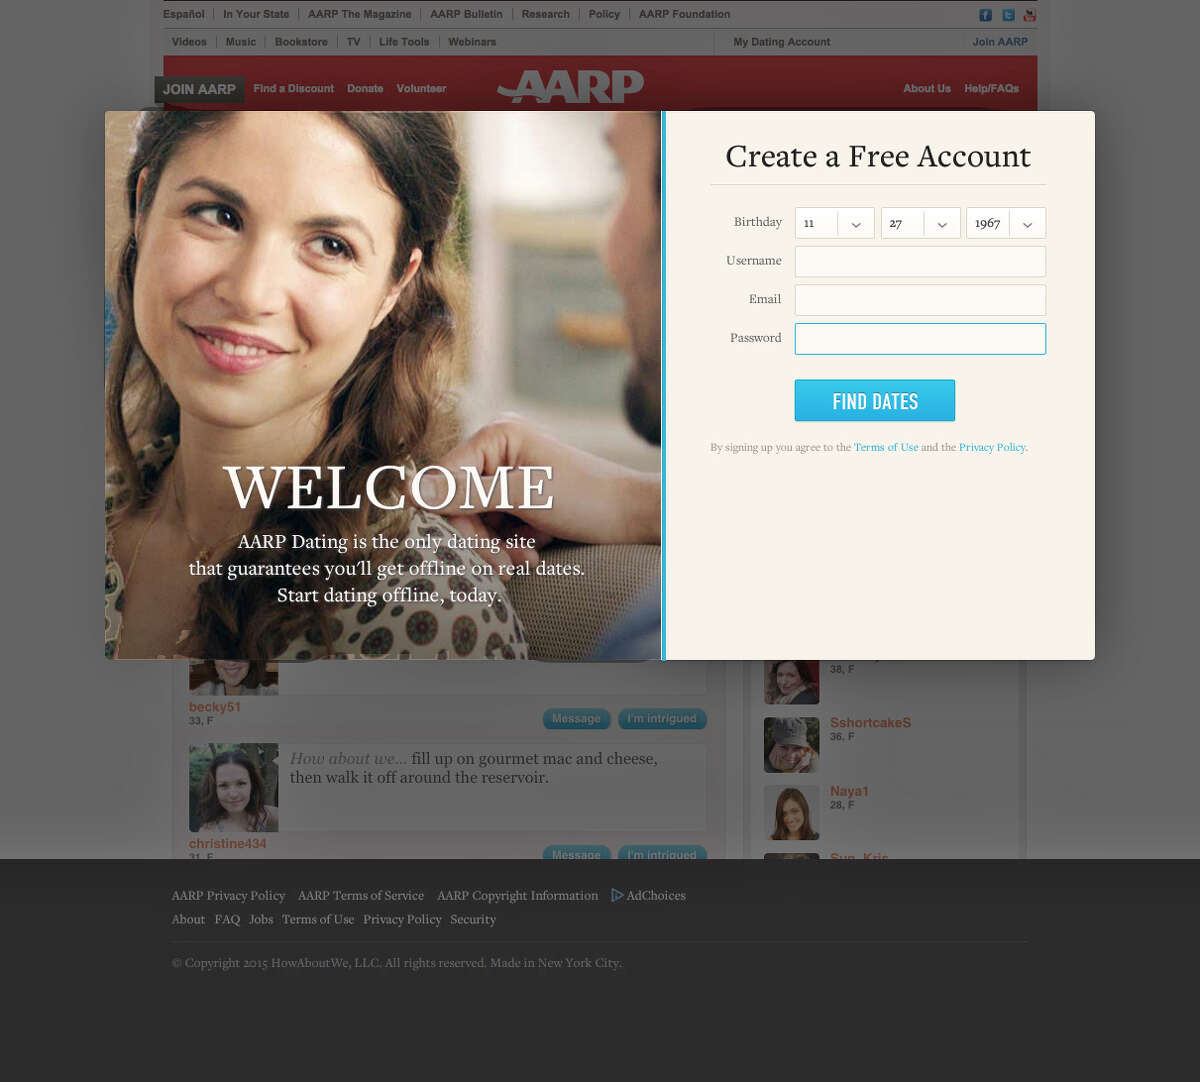 AARP has a dating site. Researchers found that 6 percent of those 55 to 64, and 3 percent of those 65 and older, used online dating sites.